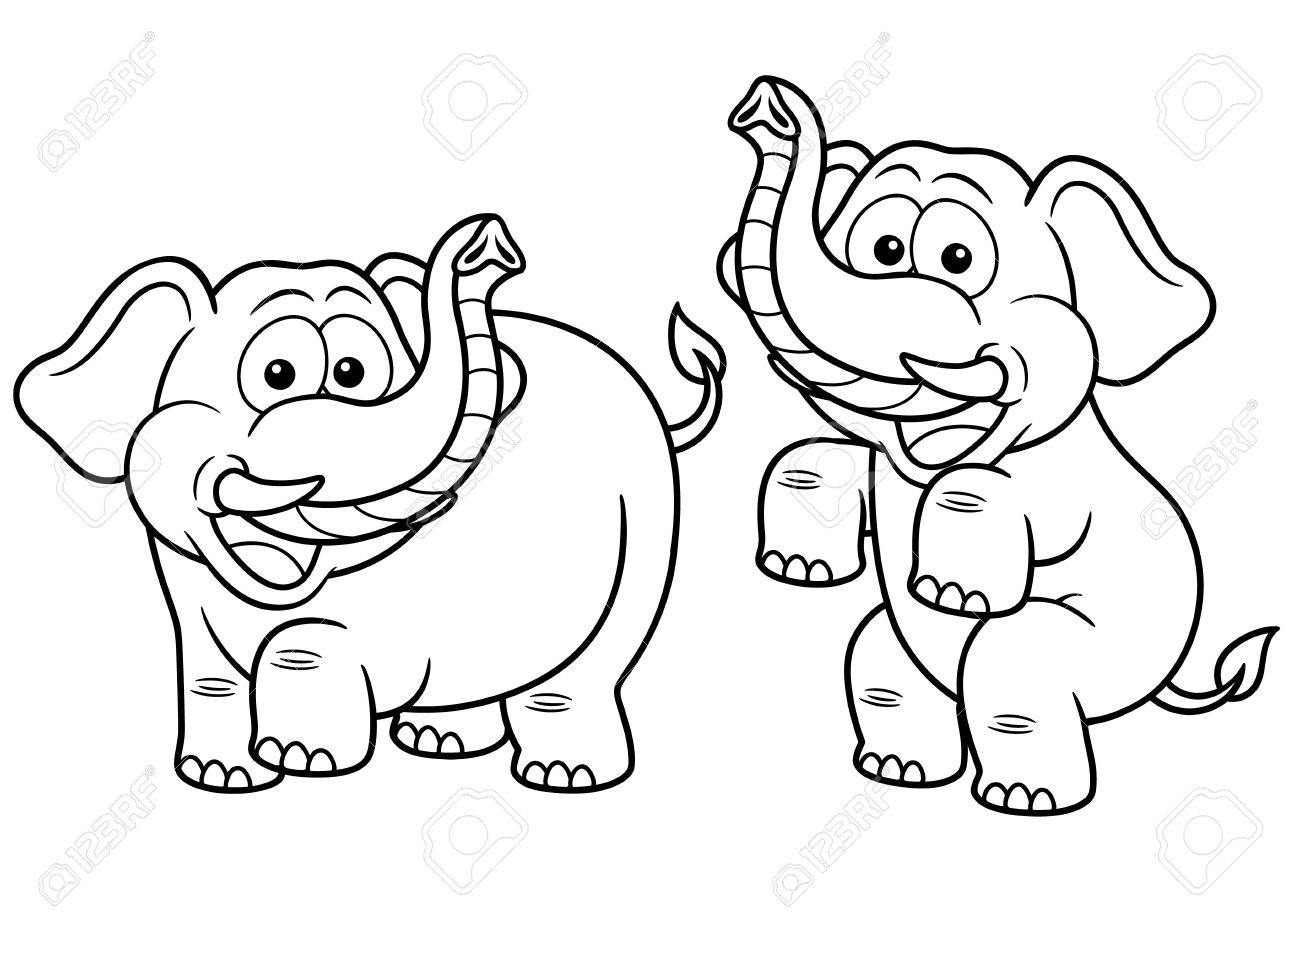 Vector Illustration Of Cartoon Elephant - Coloring Book Royalty Free ...